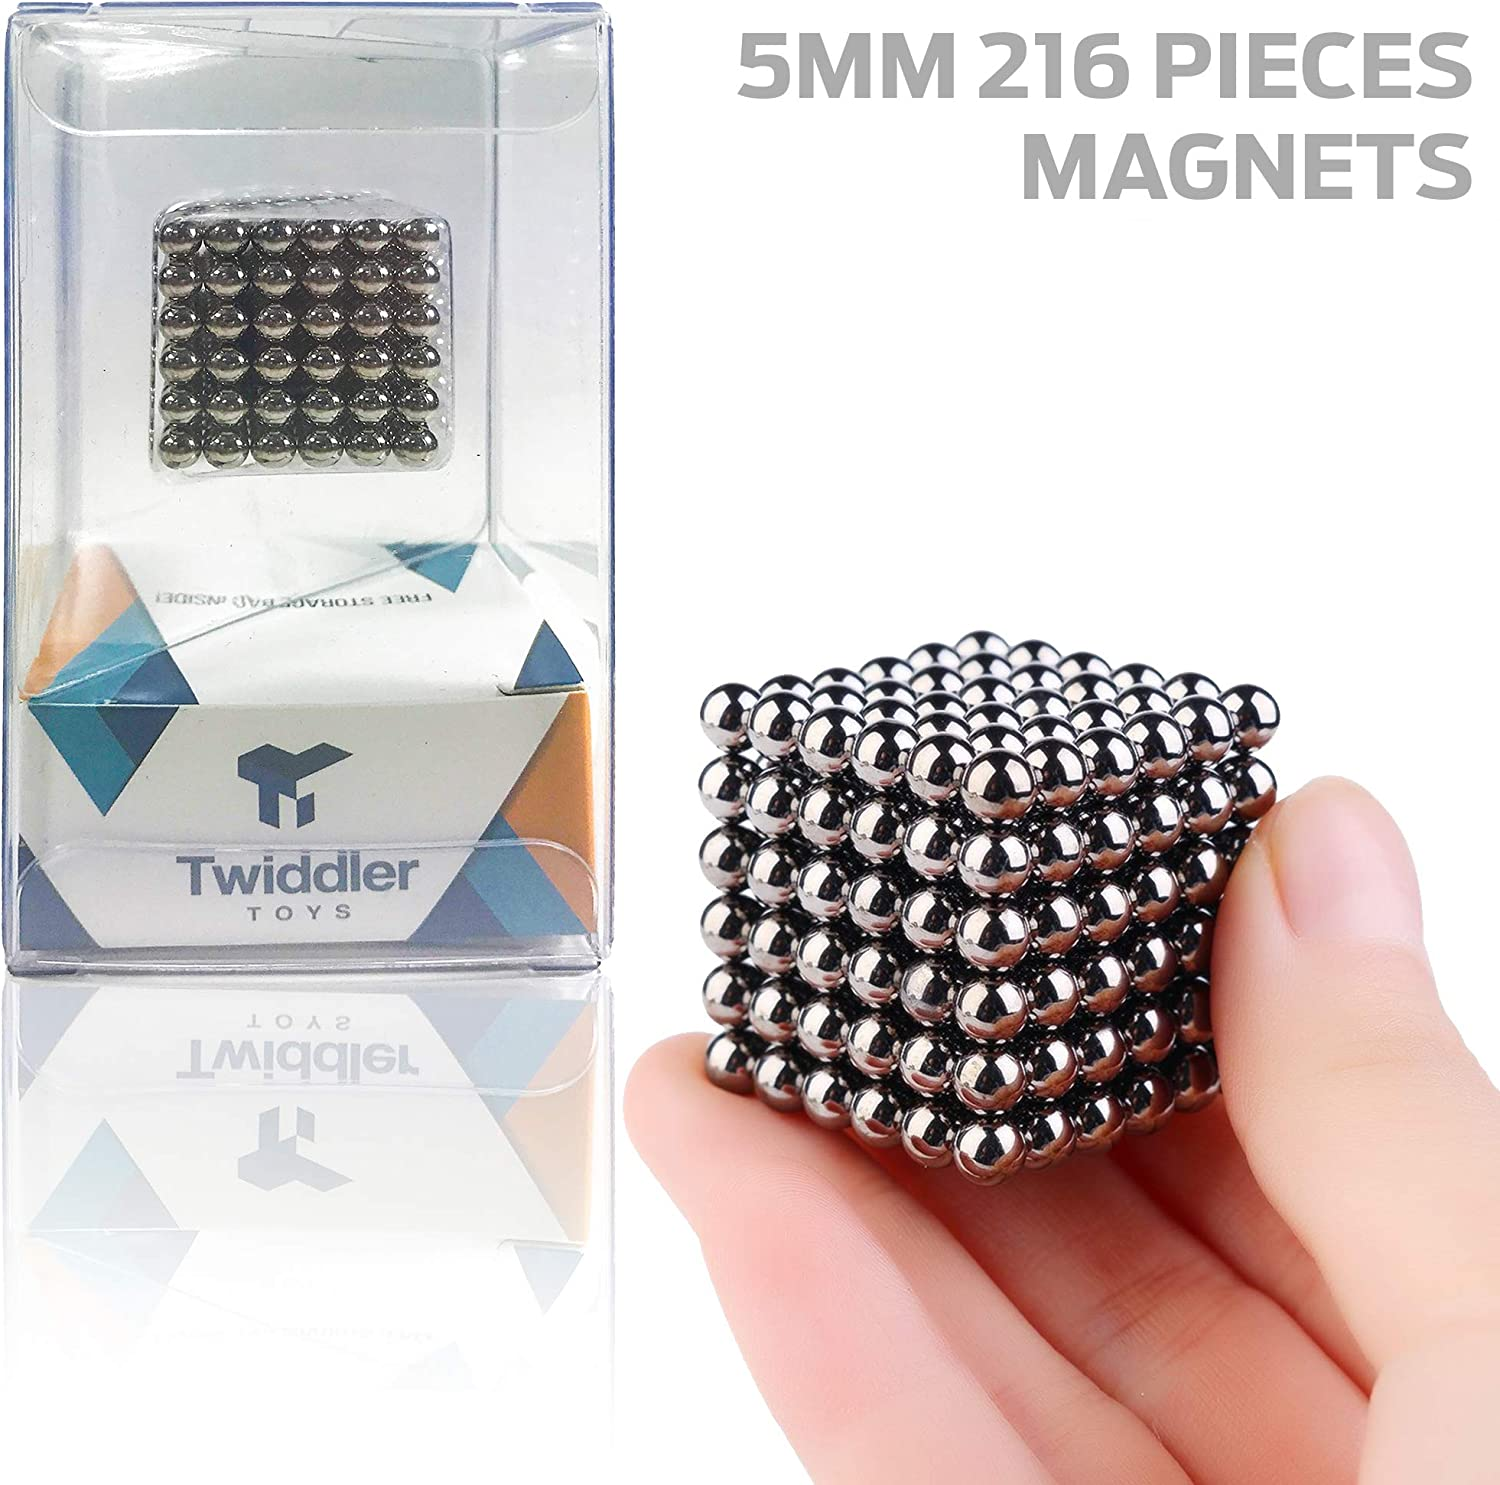 Twiddler Toys Upgraded 5MM 216pcs Magnets Sculpture Building Blocks Toys for Intelligence Learning -Office Toy & Stress Relief for Adults